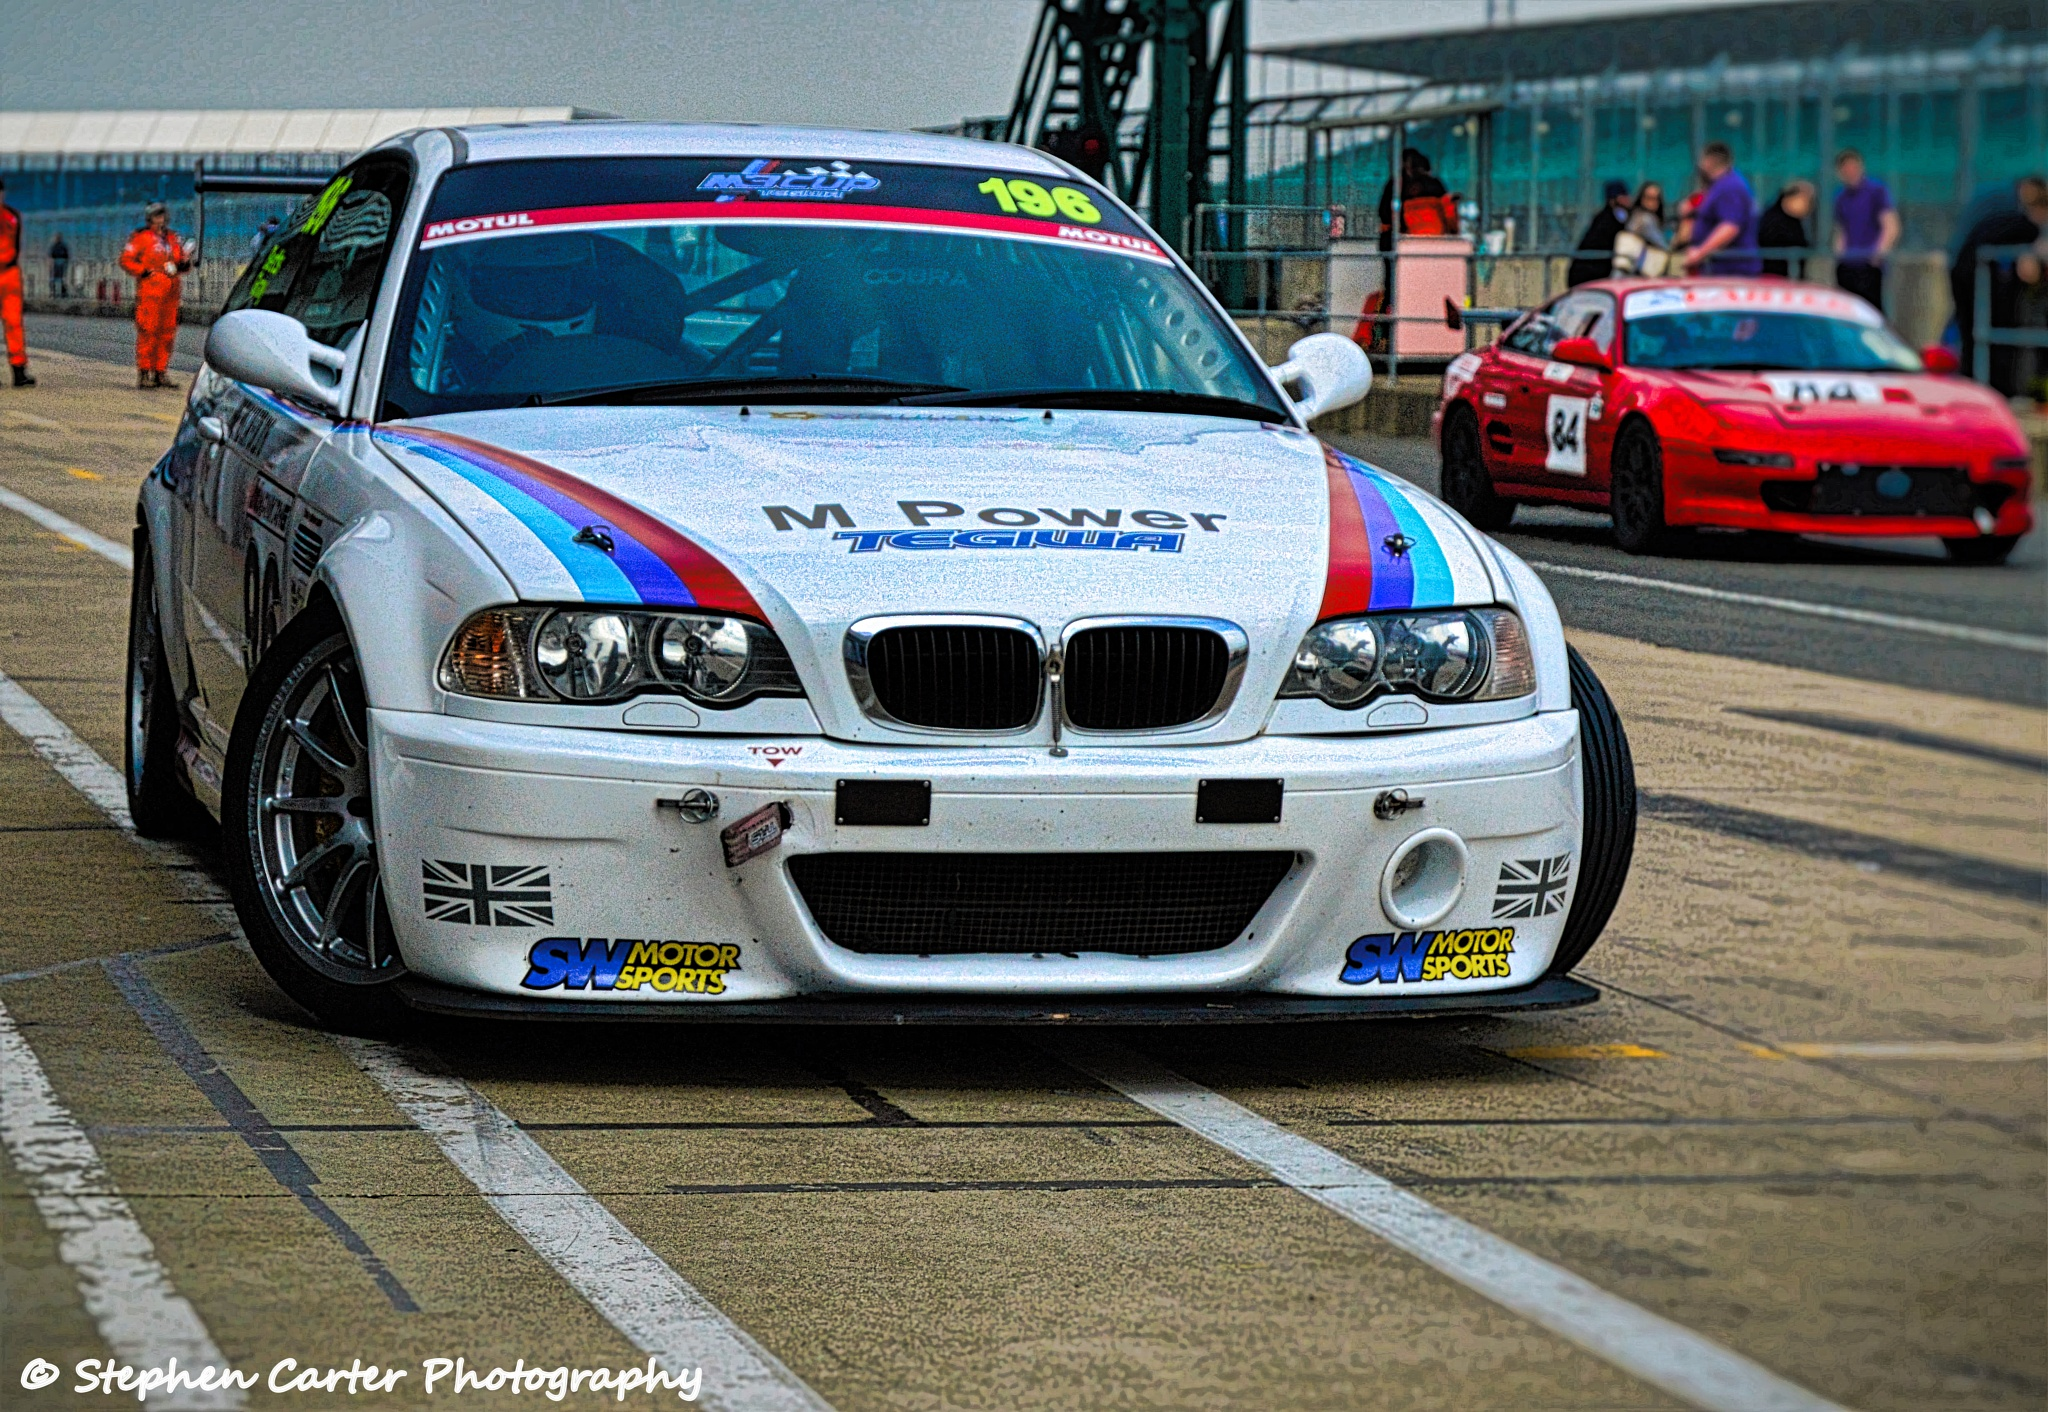 BMW M3 - 750 Motor Club by Stephen Carter Photography